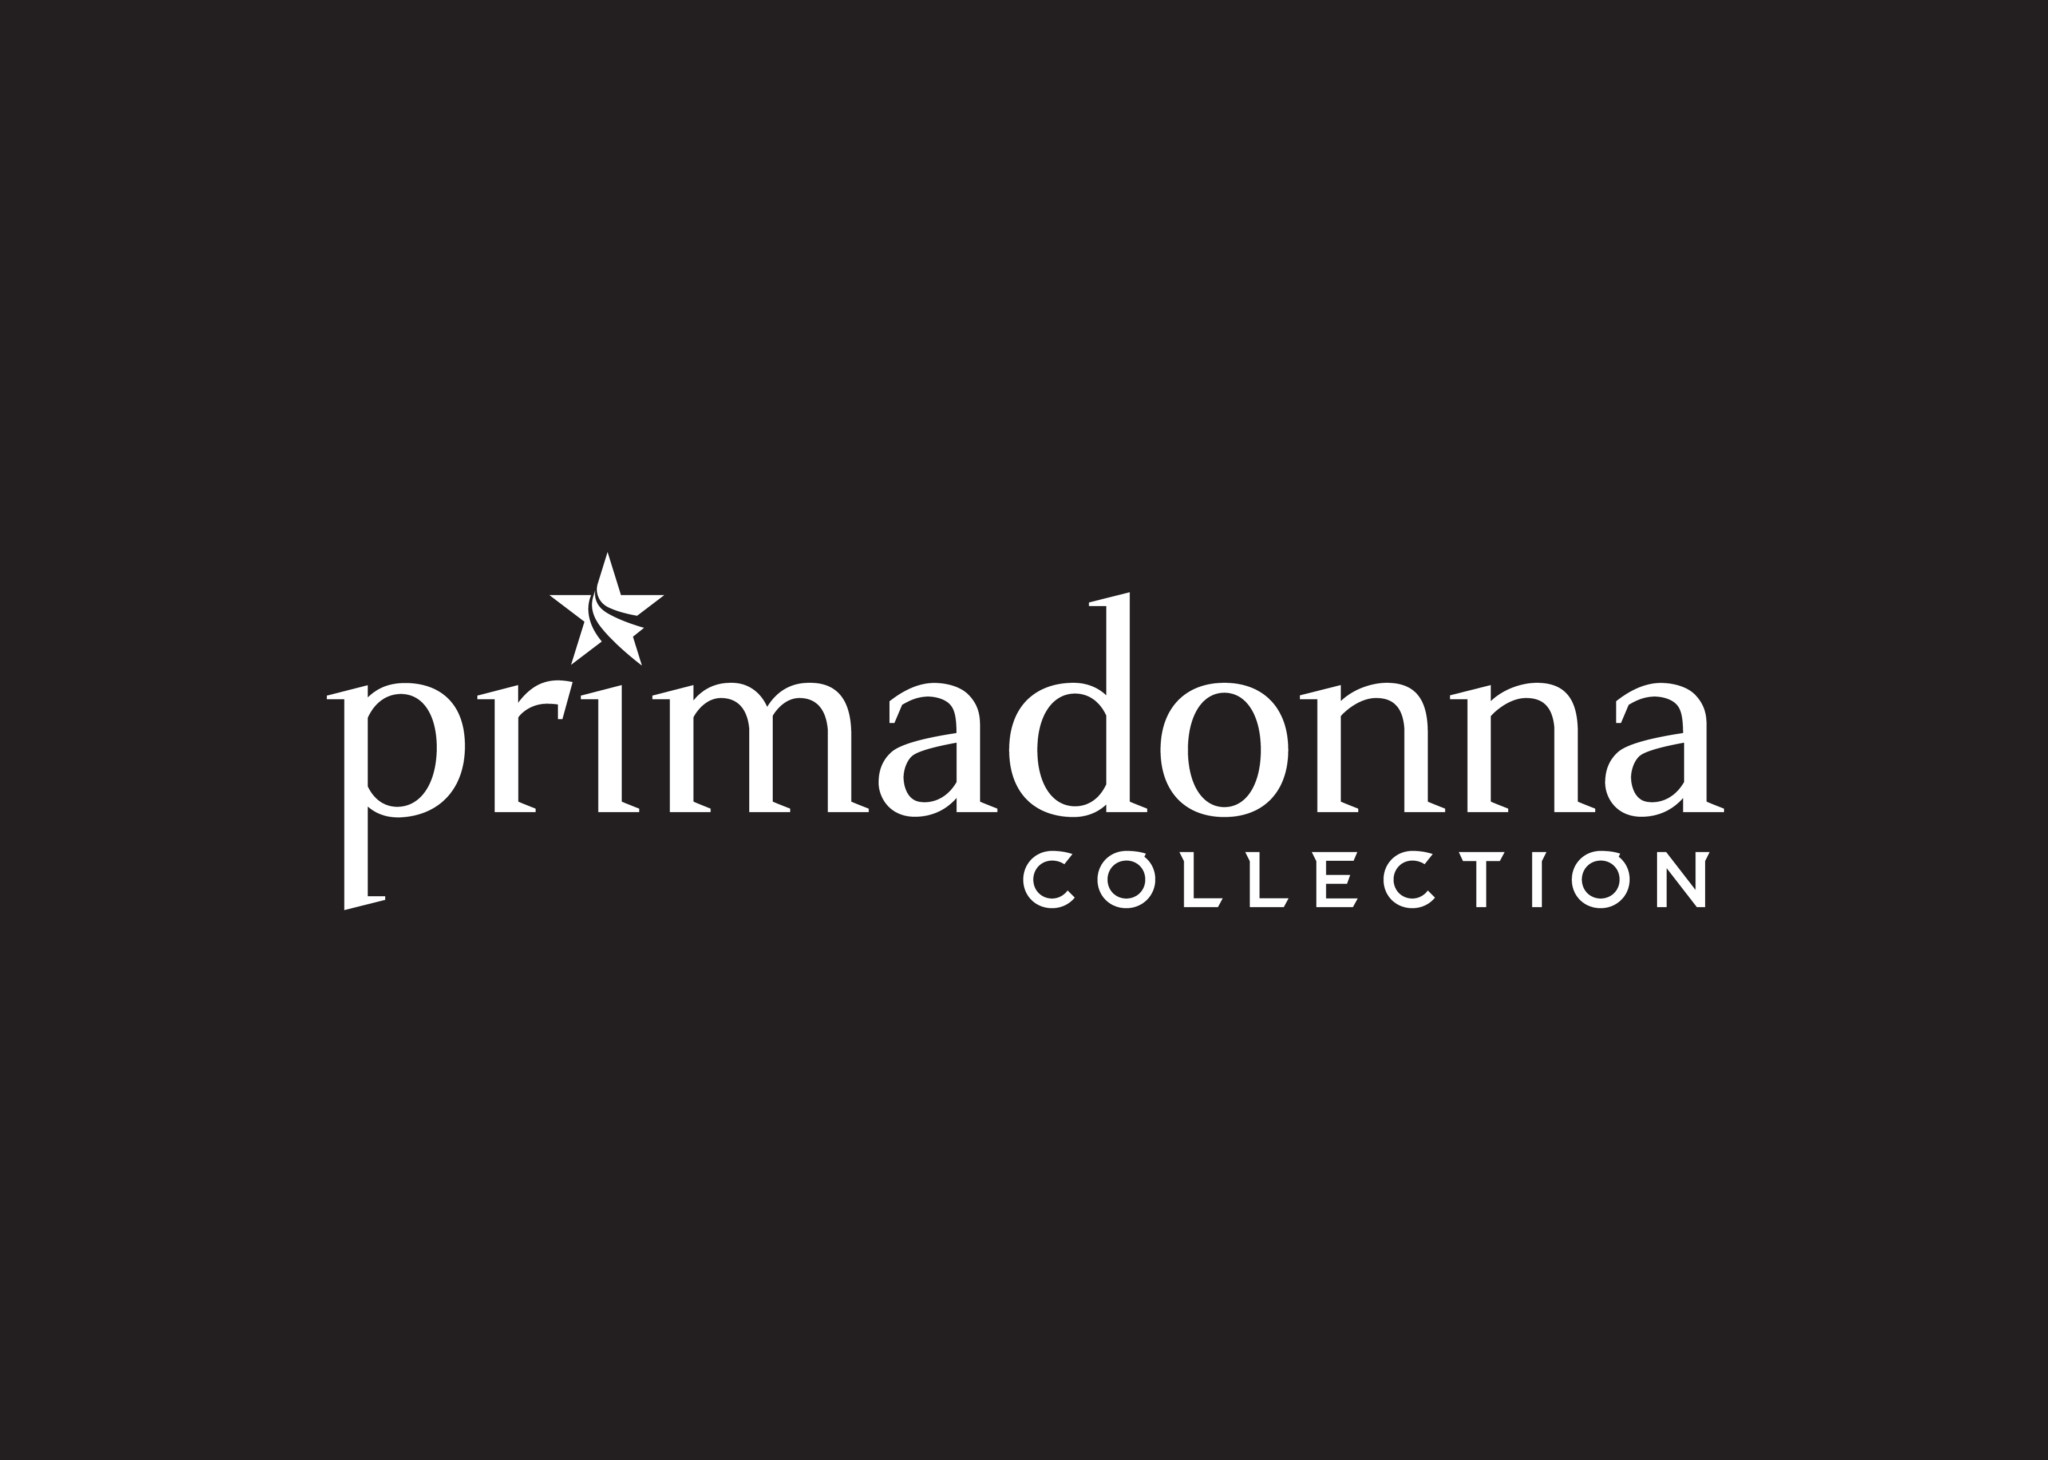 primadonna-collection-logo